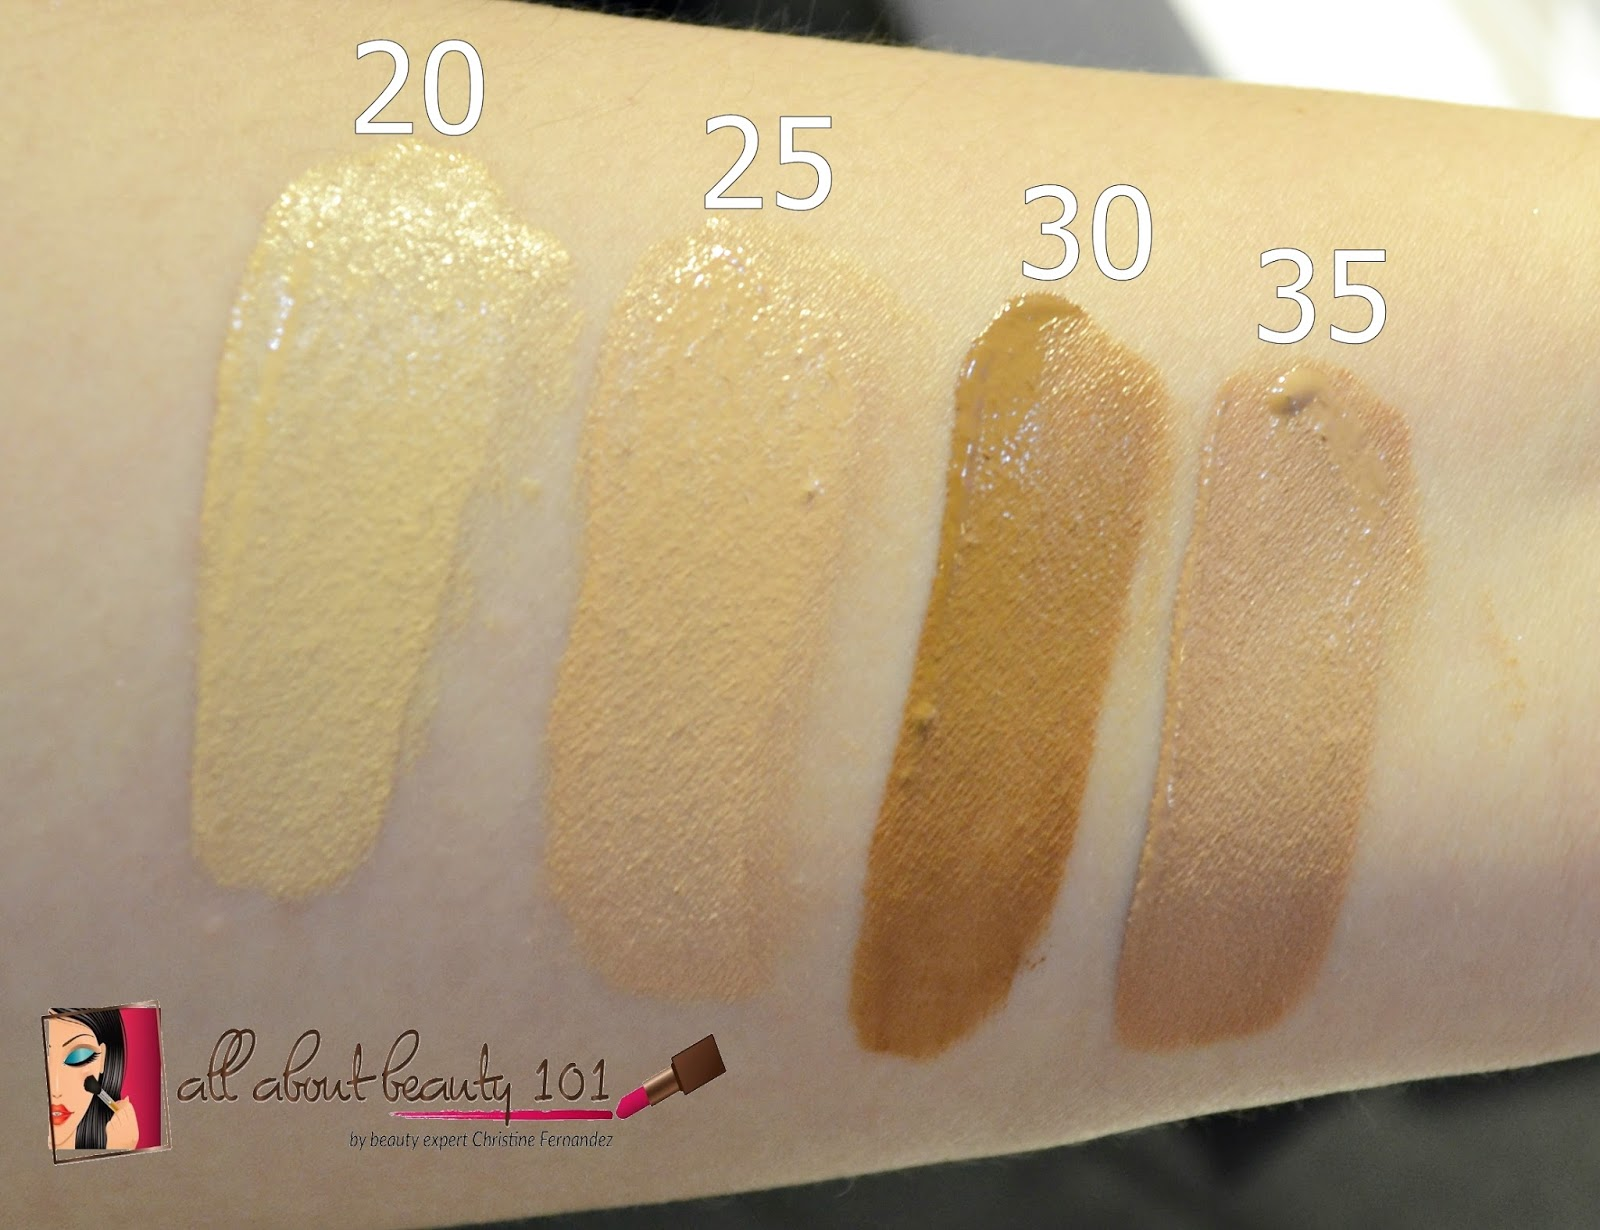 Fit Me Concealer by Maybelline #19